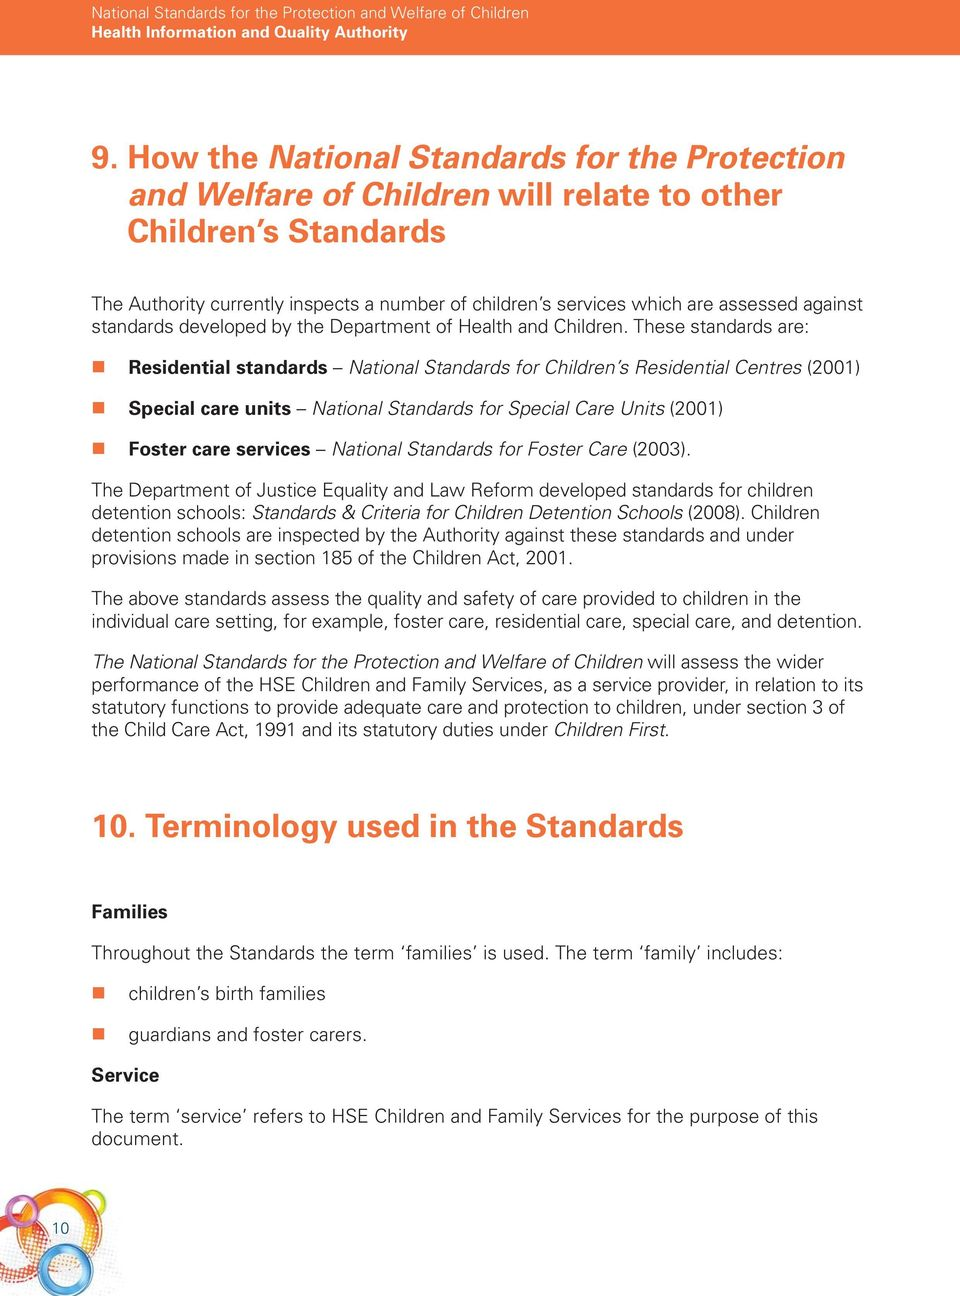 These standards are: Residential standards National Standards for Children s Residential Centres (2001) Special care units National Standards for Special Care Units (2001) Foster care services